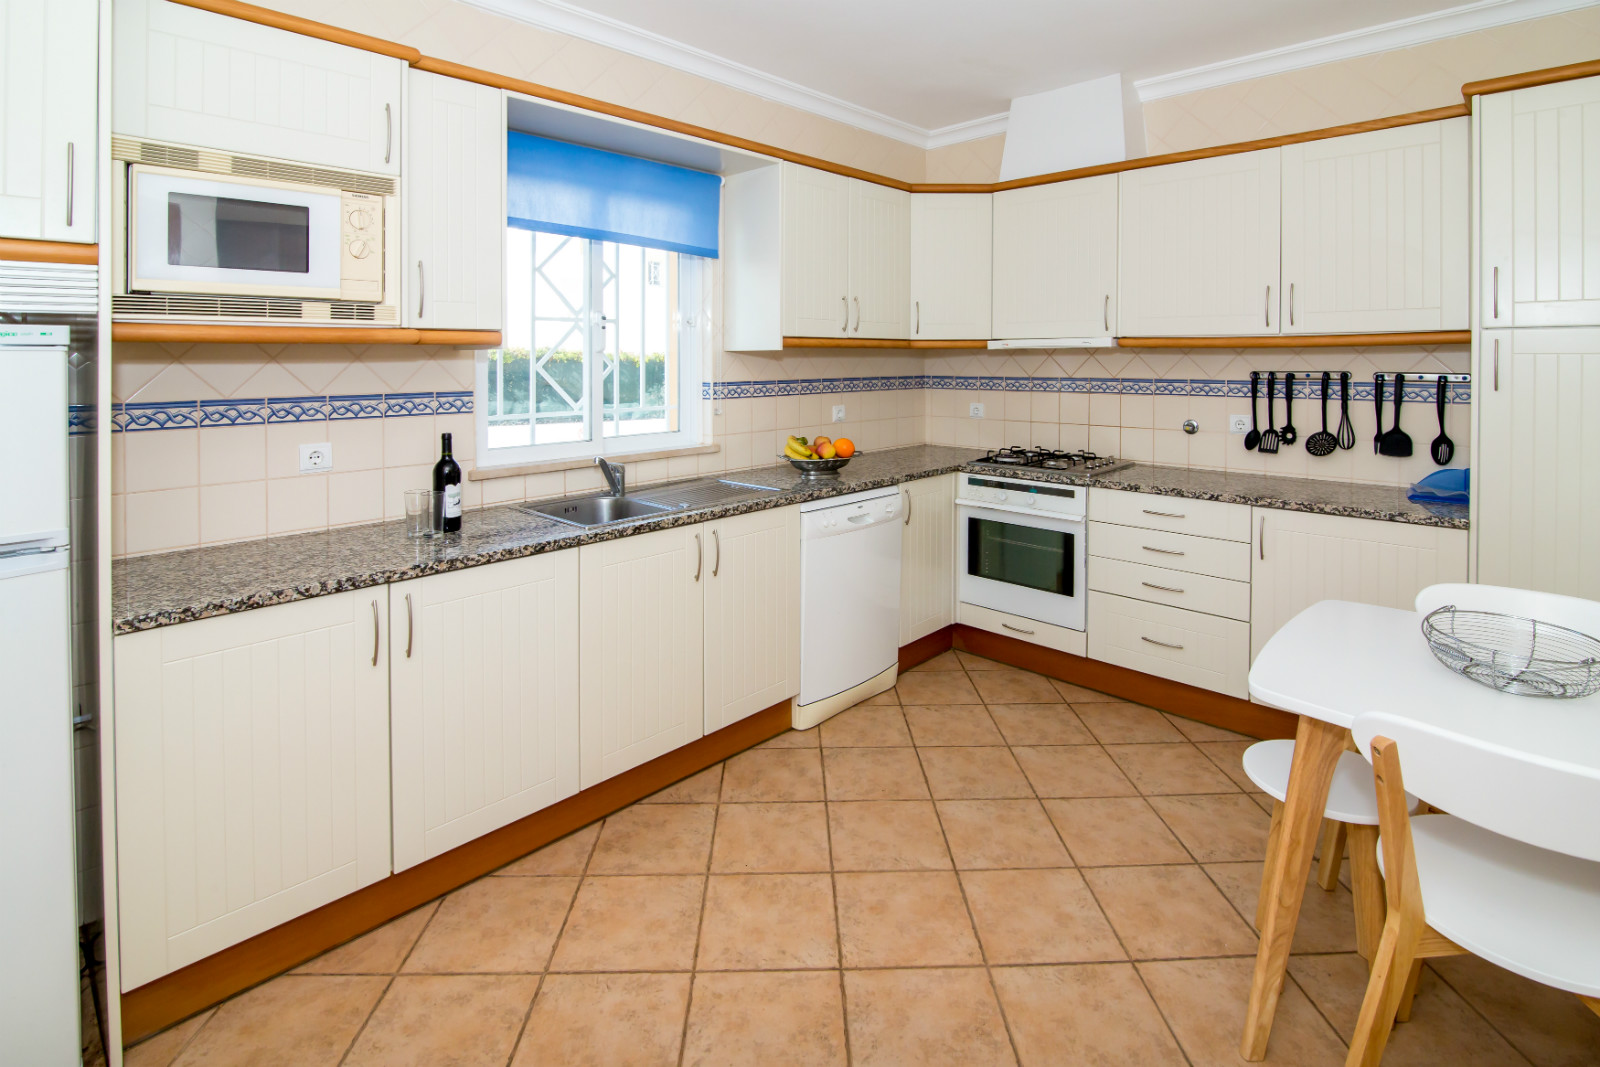 Spacious, light and bright magnificent, fully equipped kitchen overlooking pool.